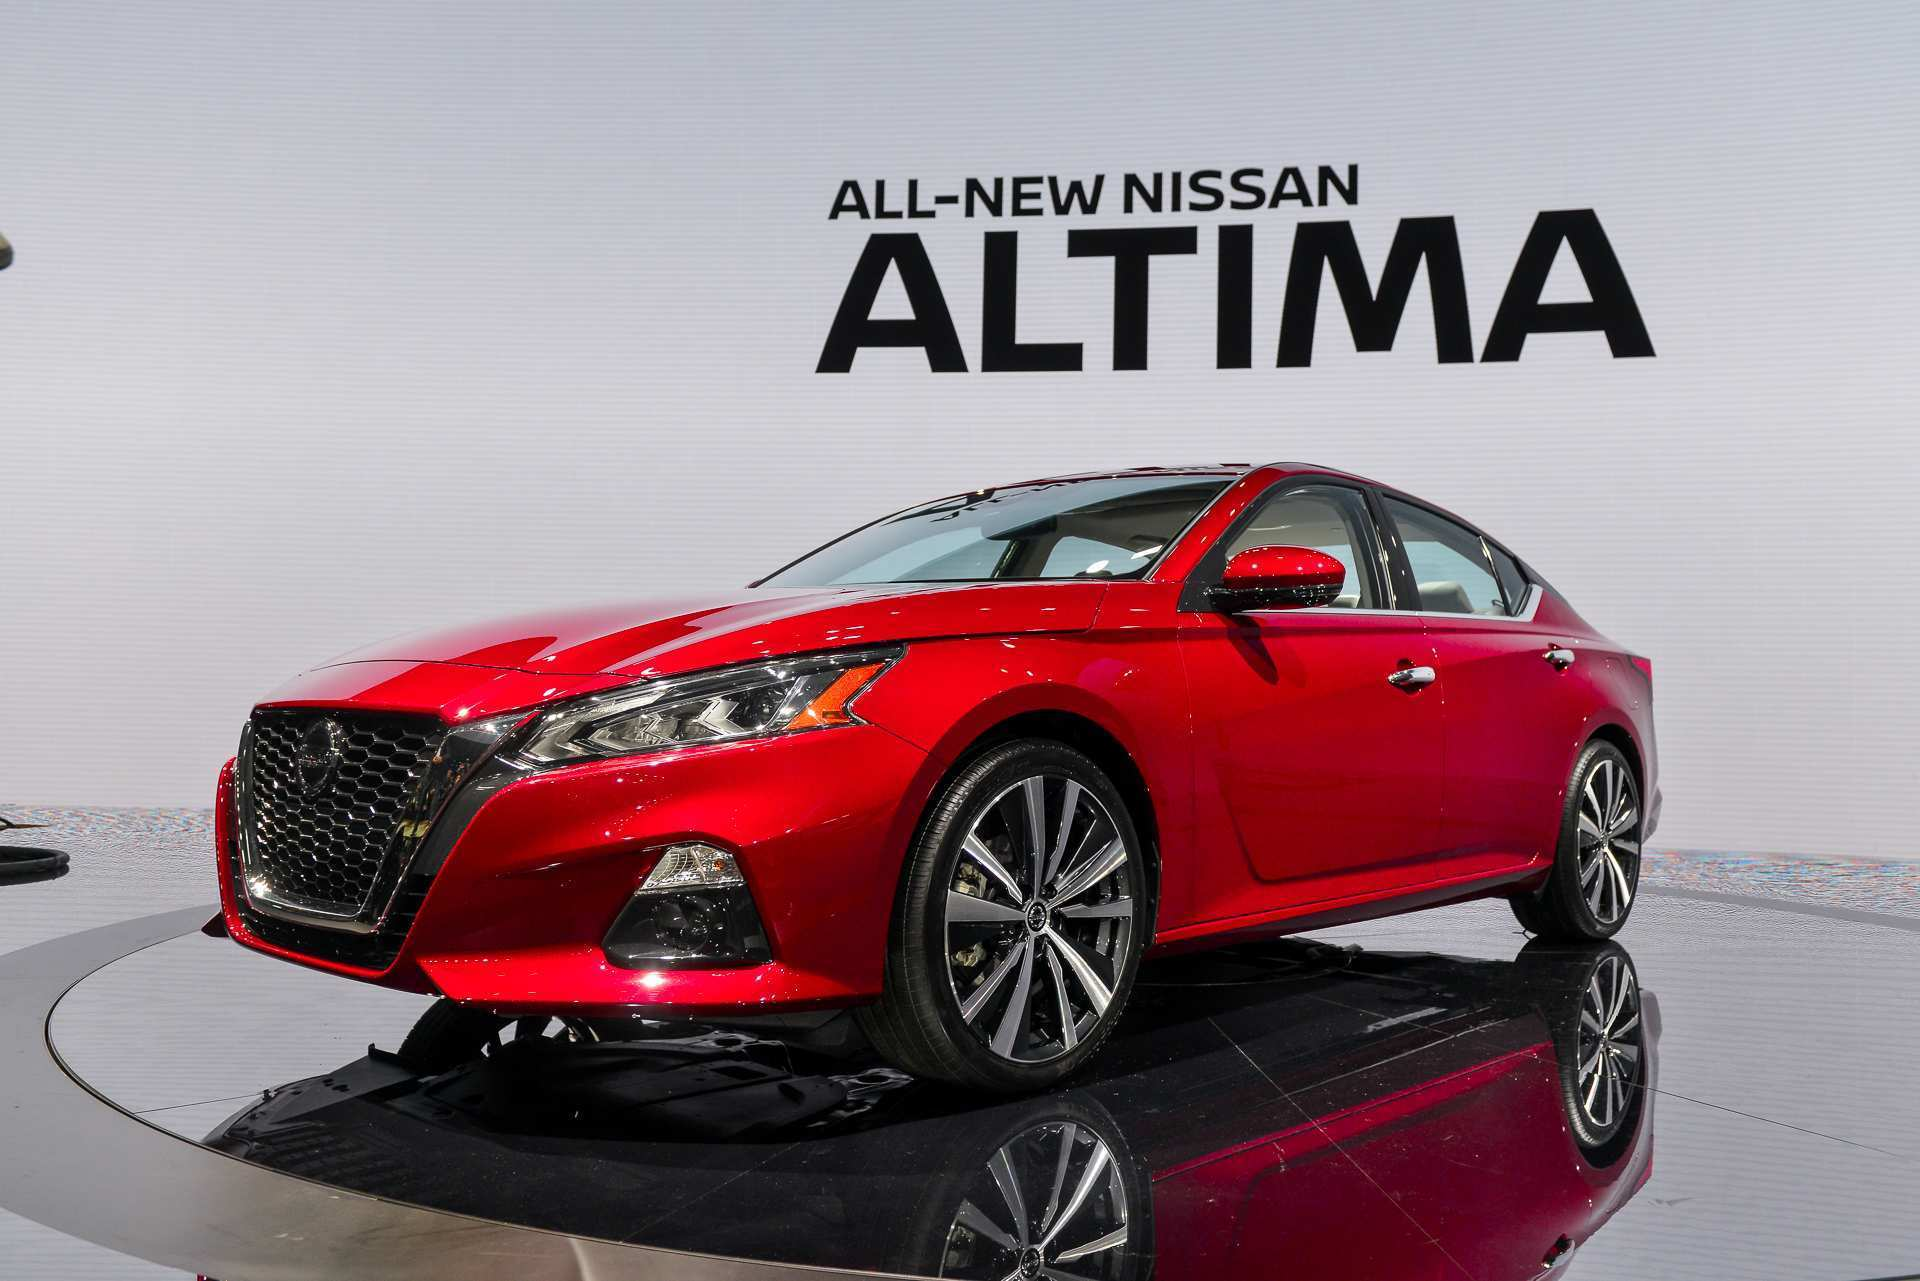 30 New Nissan Altima 2019 Horsepower Release Date